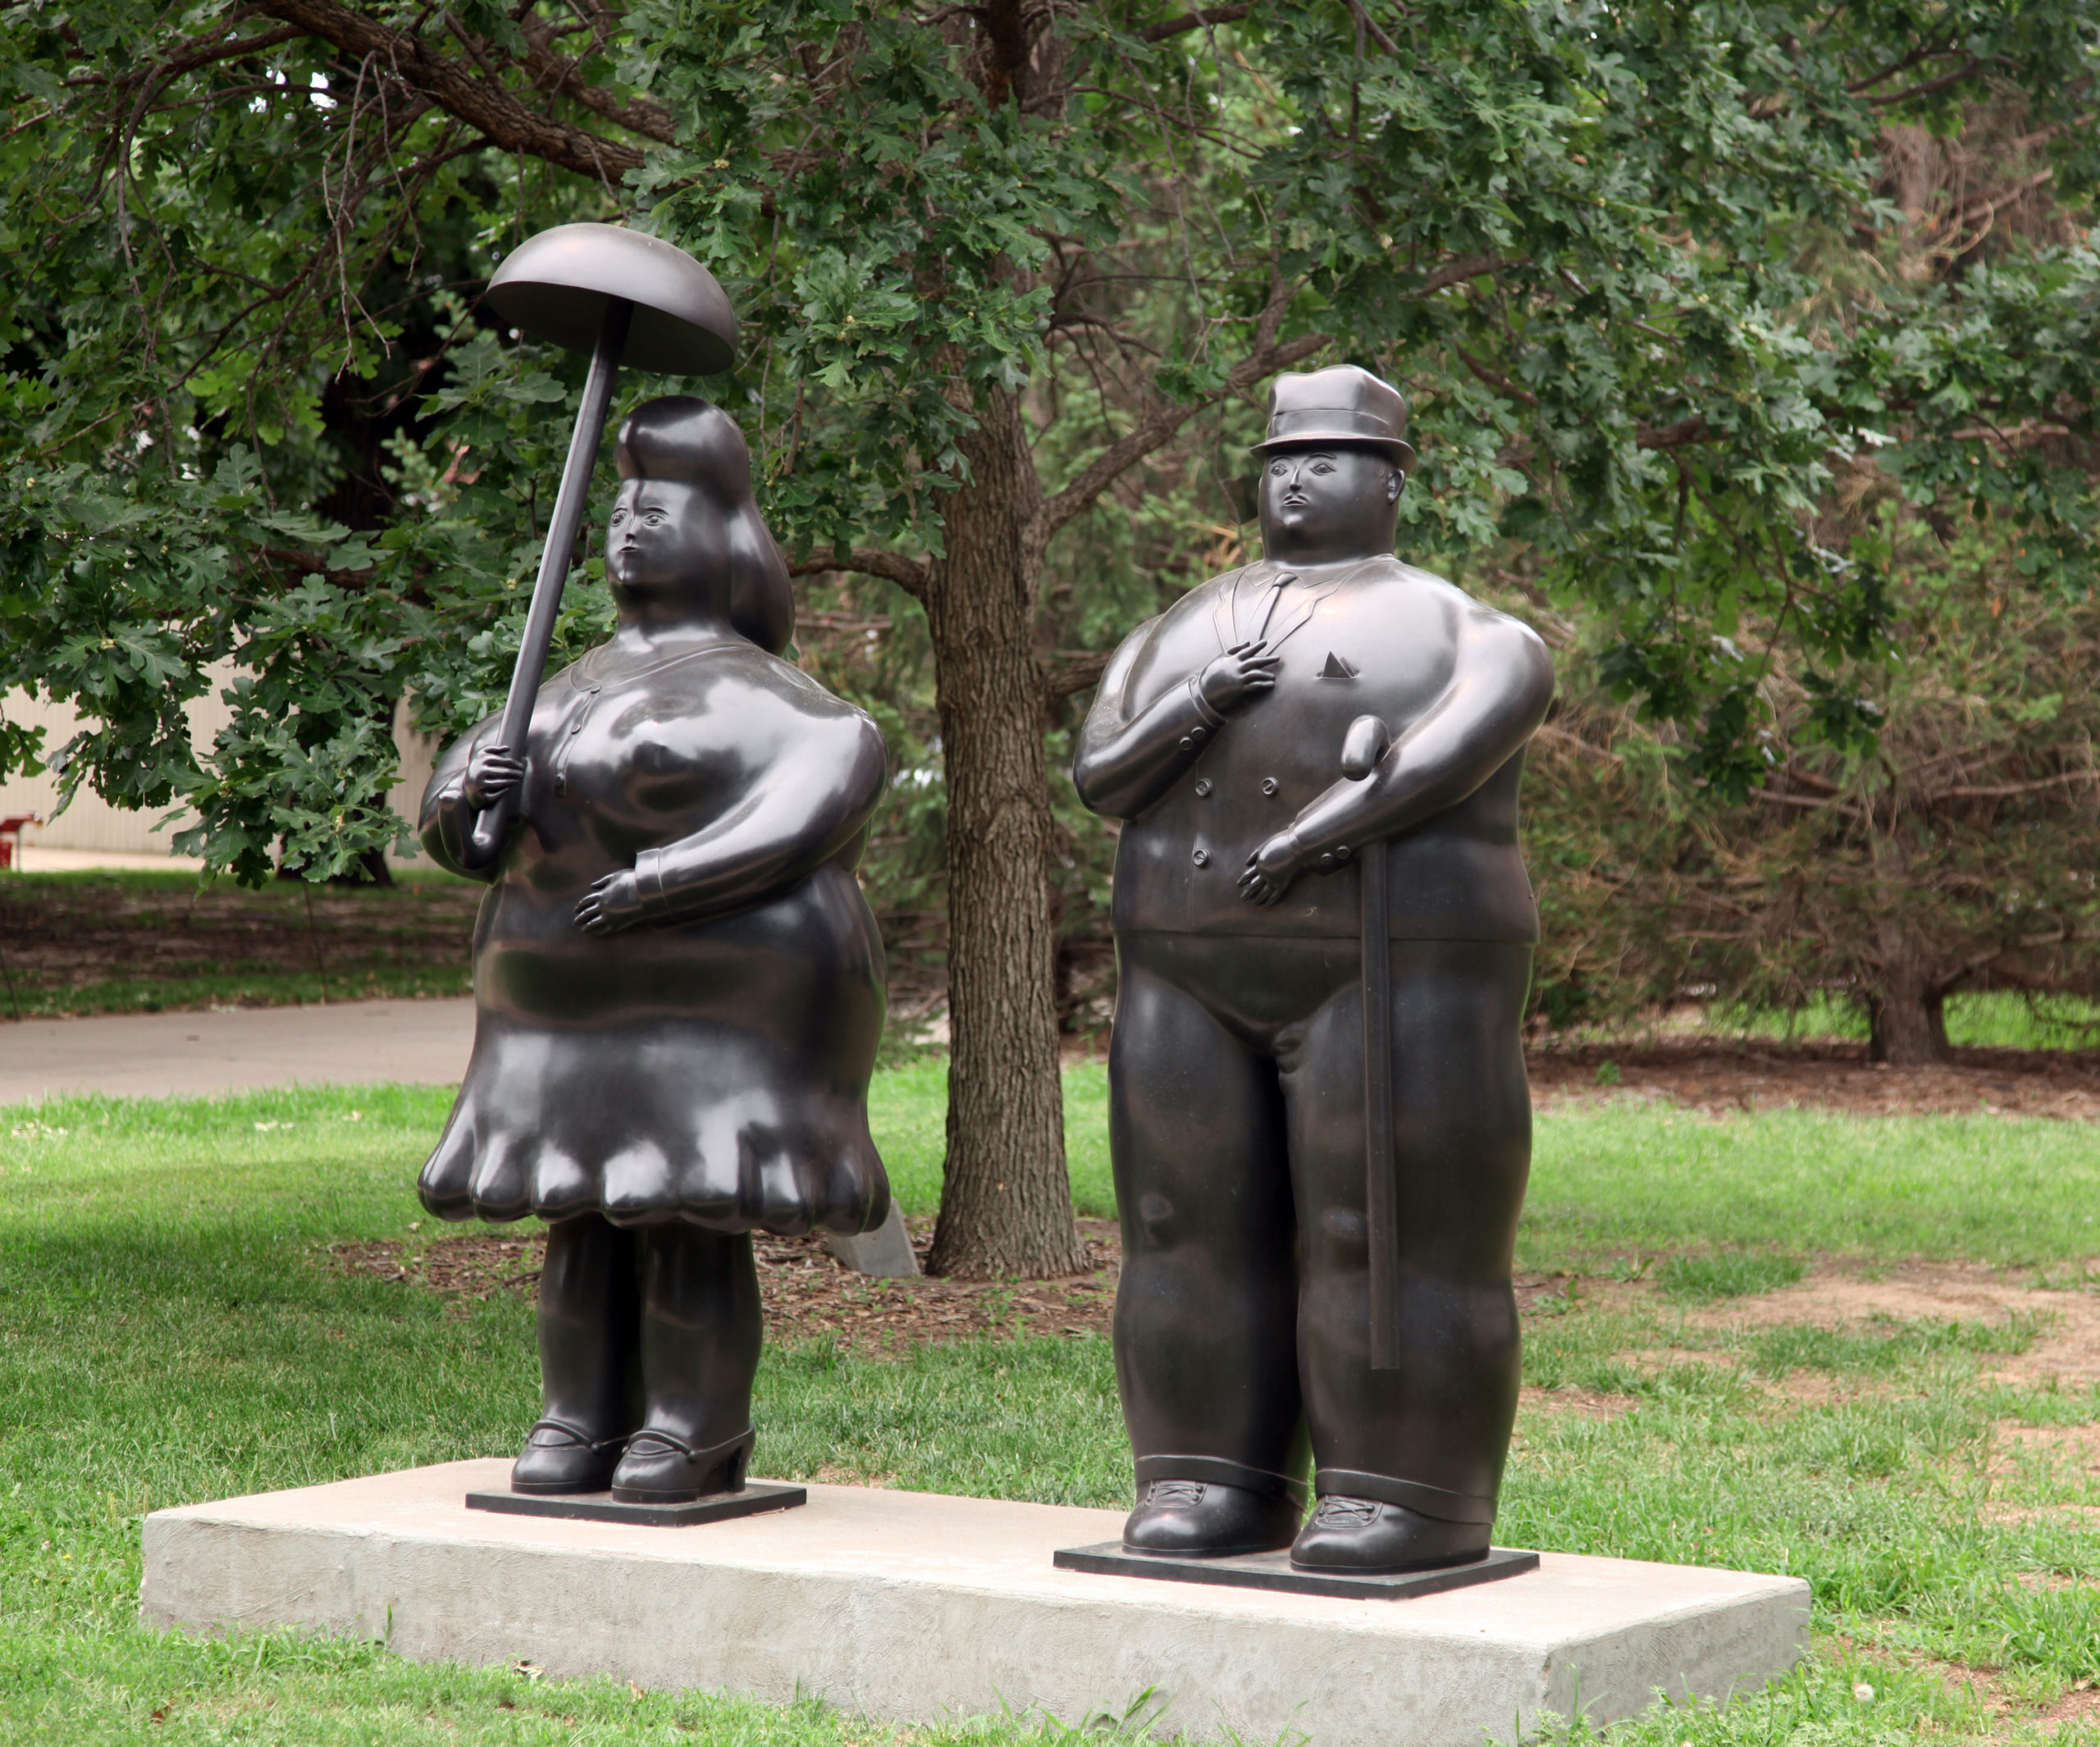 Two large statues, one of a woman with an umbrella, and the other of a man with a cane stand next to eachother